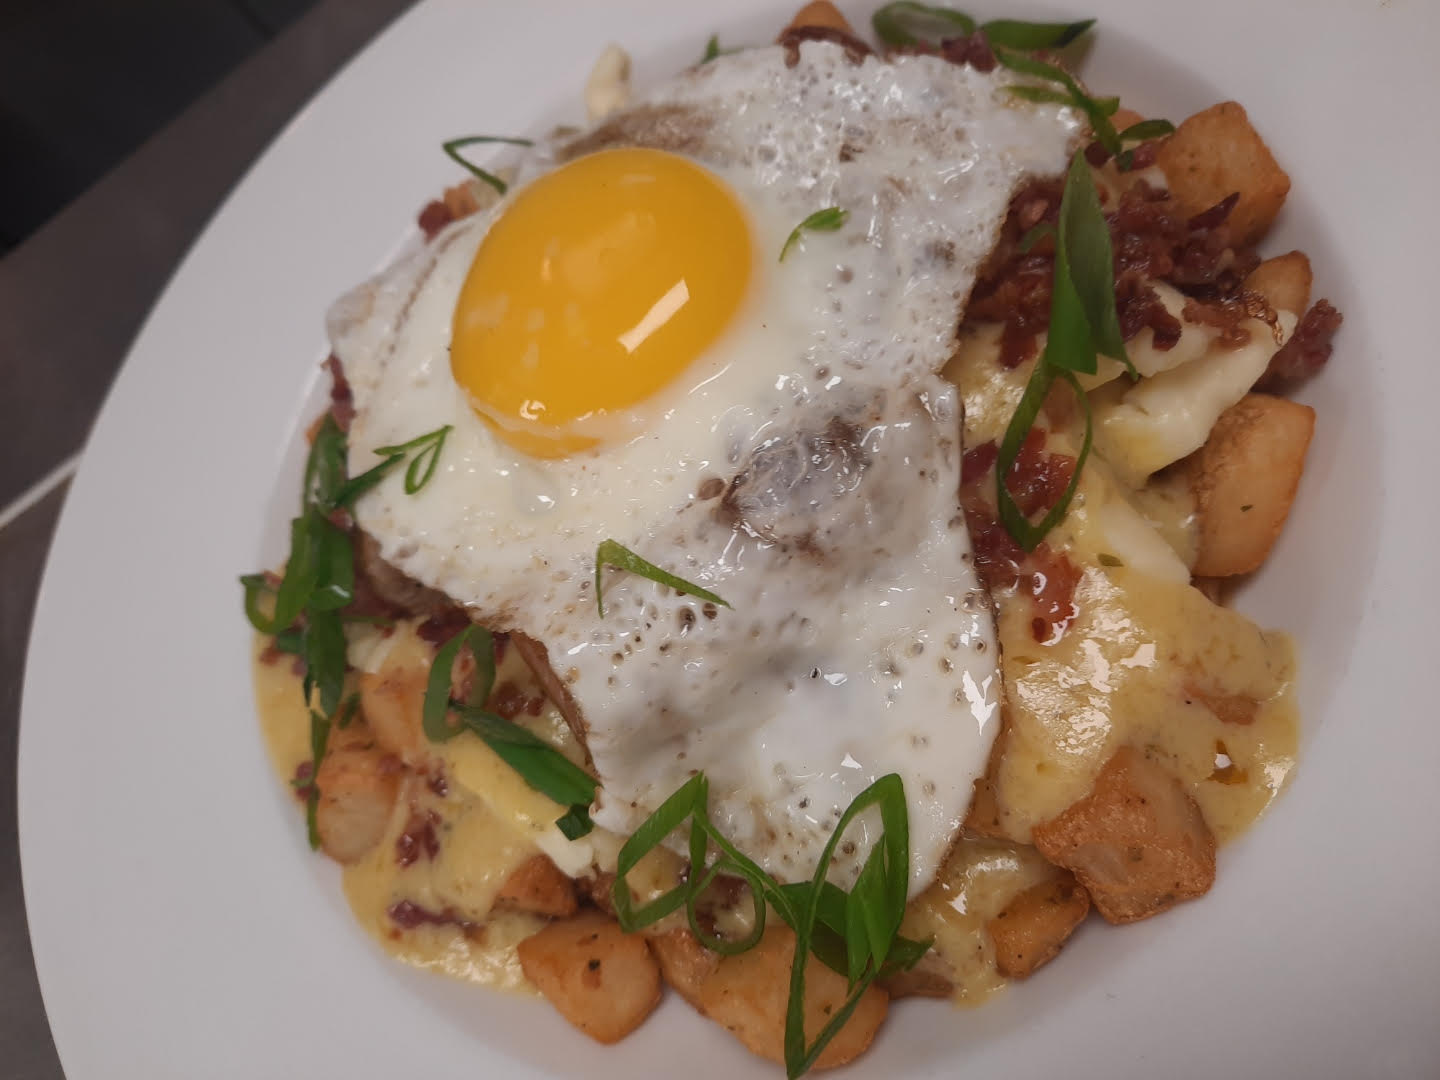 Sunrise Poutine (Sundays 10AM - 12PM)